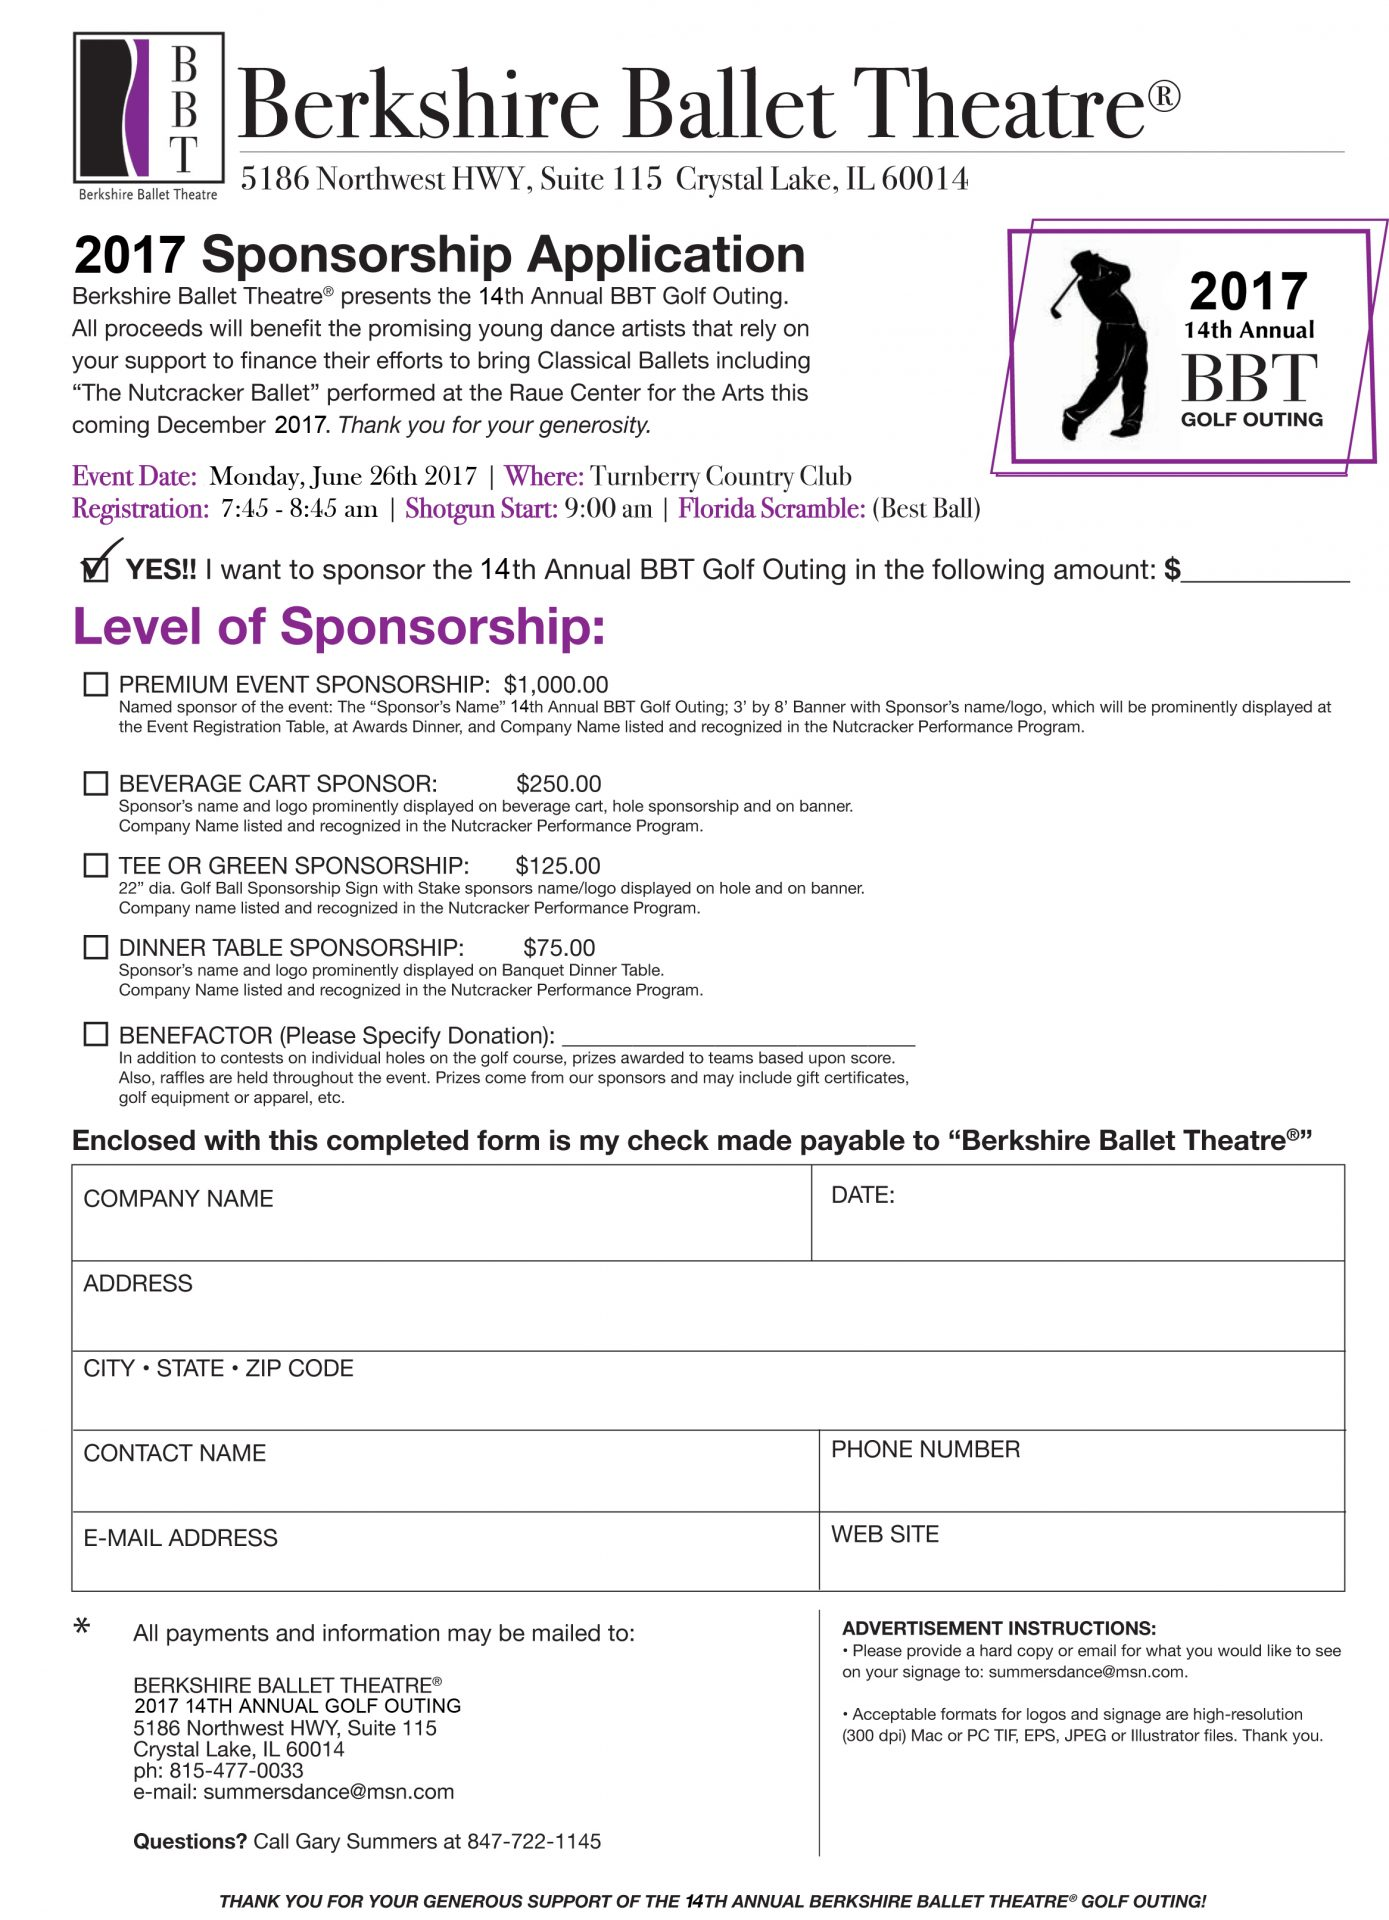 2017 bbt 14th annual golf outing sponsorship form summers april 13 2017 thecheapjerseys Choice Image